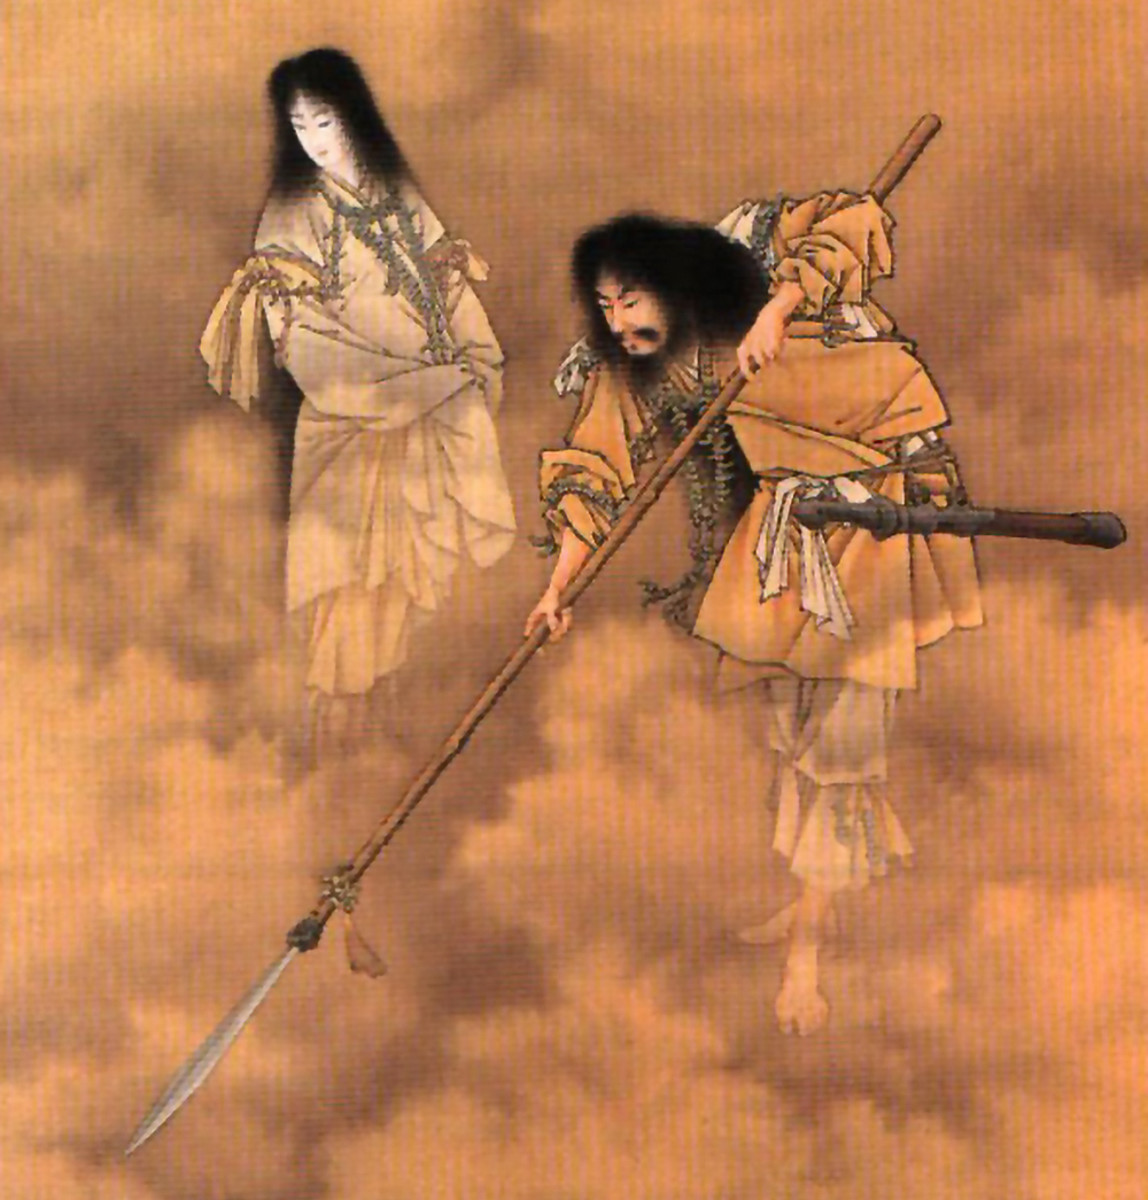 Izanagi and Izanami, the divine progenitor gods of Shintoism, during better times.